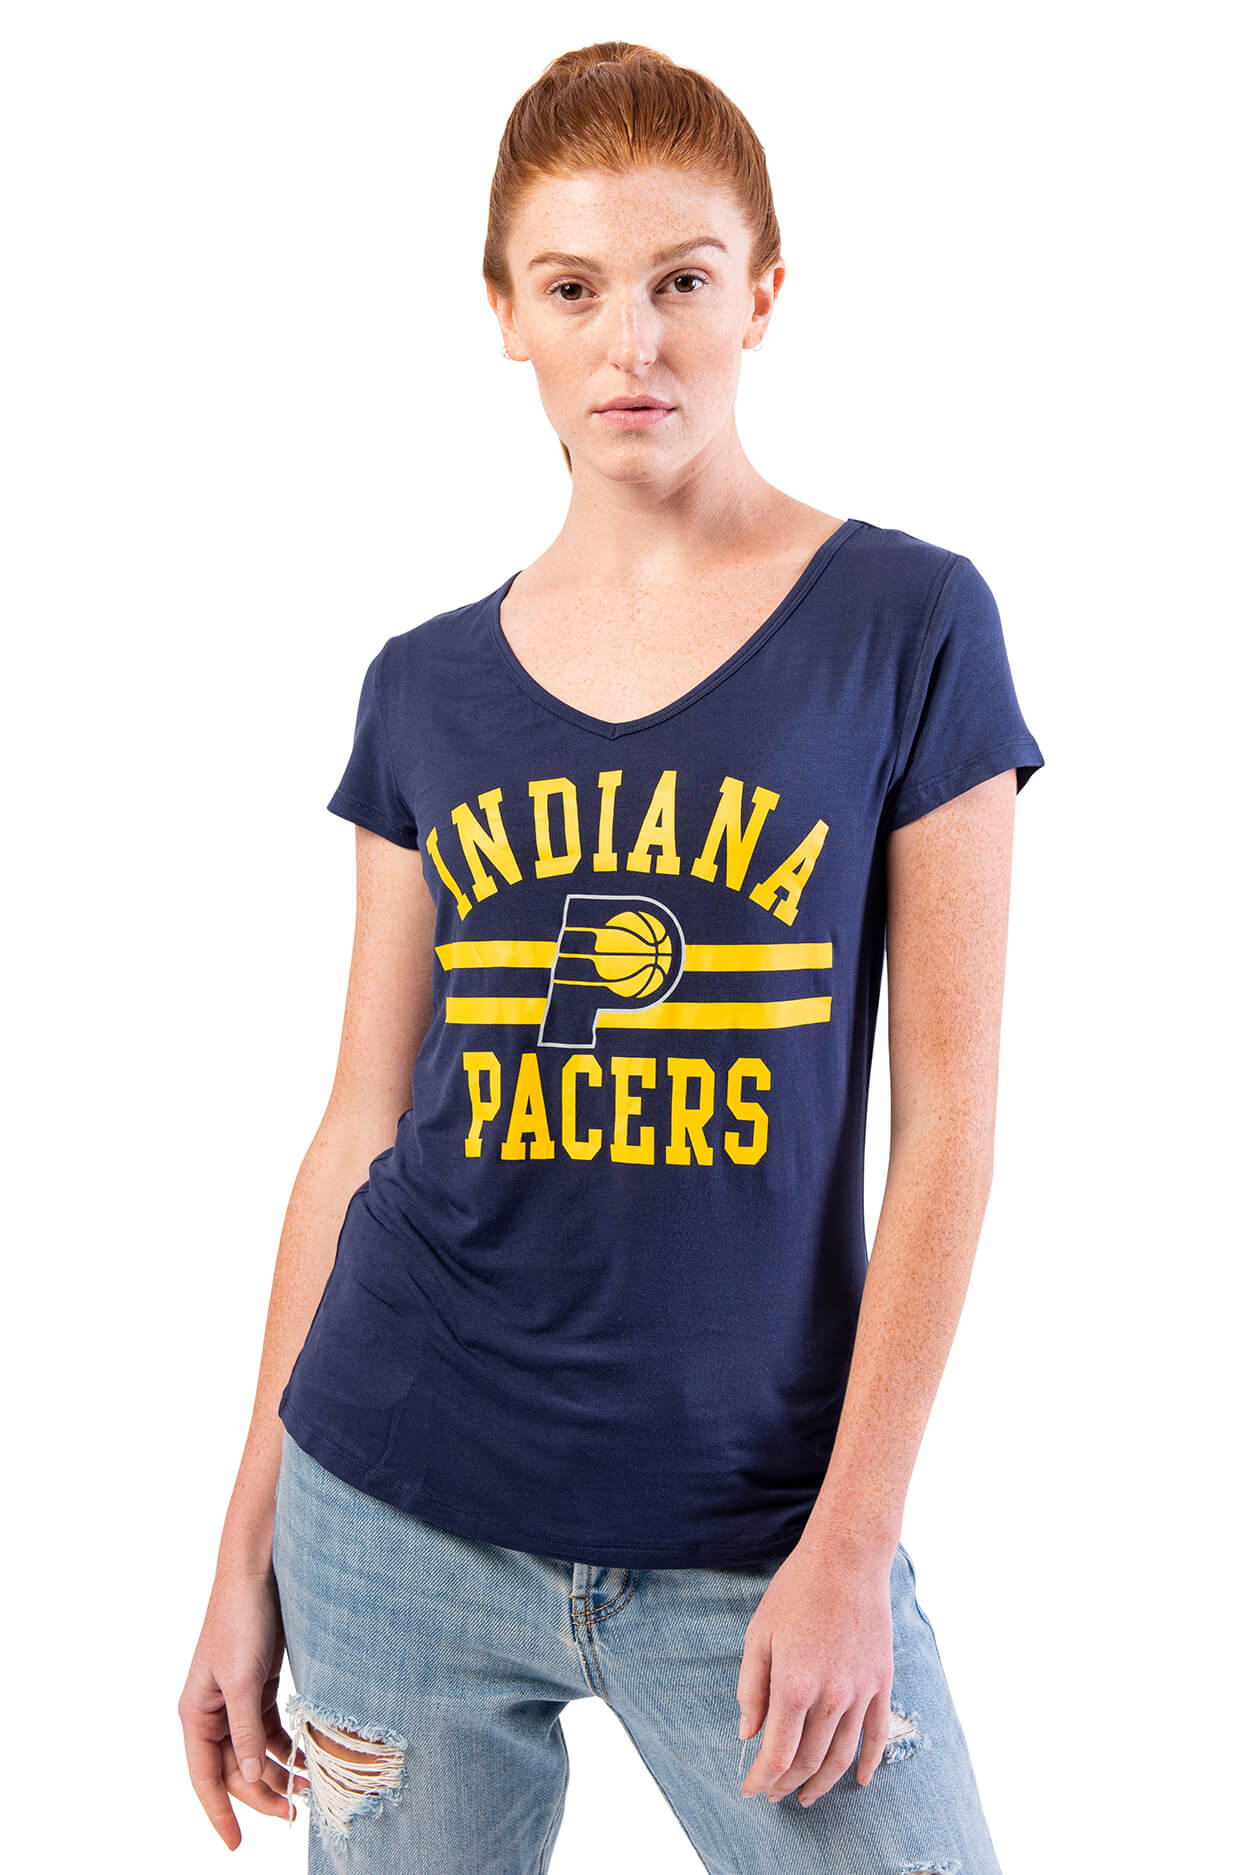 NBA Indiana Pacers Women's Short Sleeve Tee|Indiana Pacers